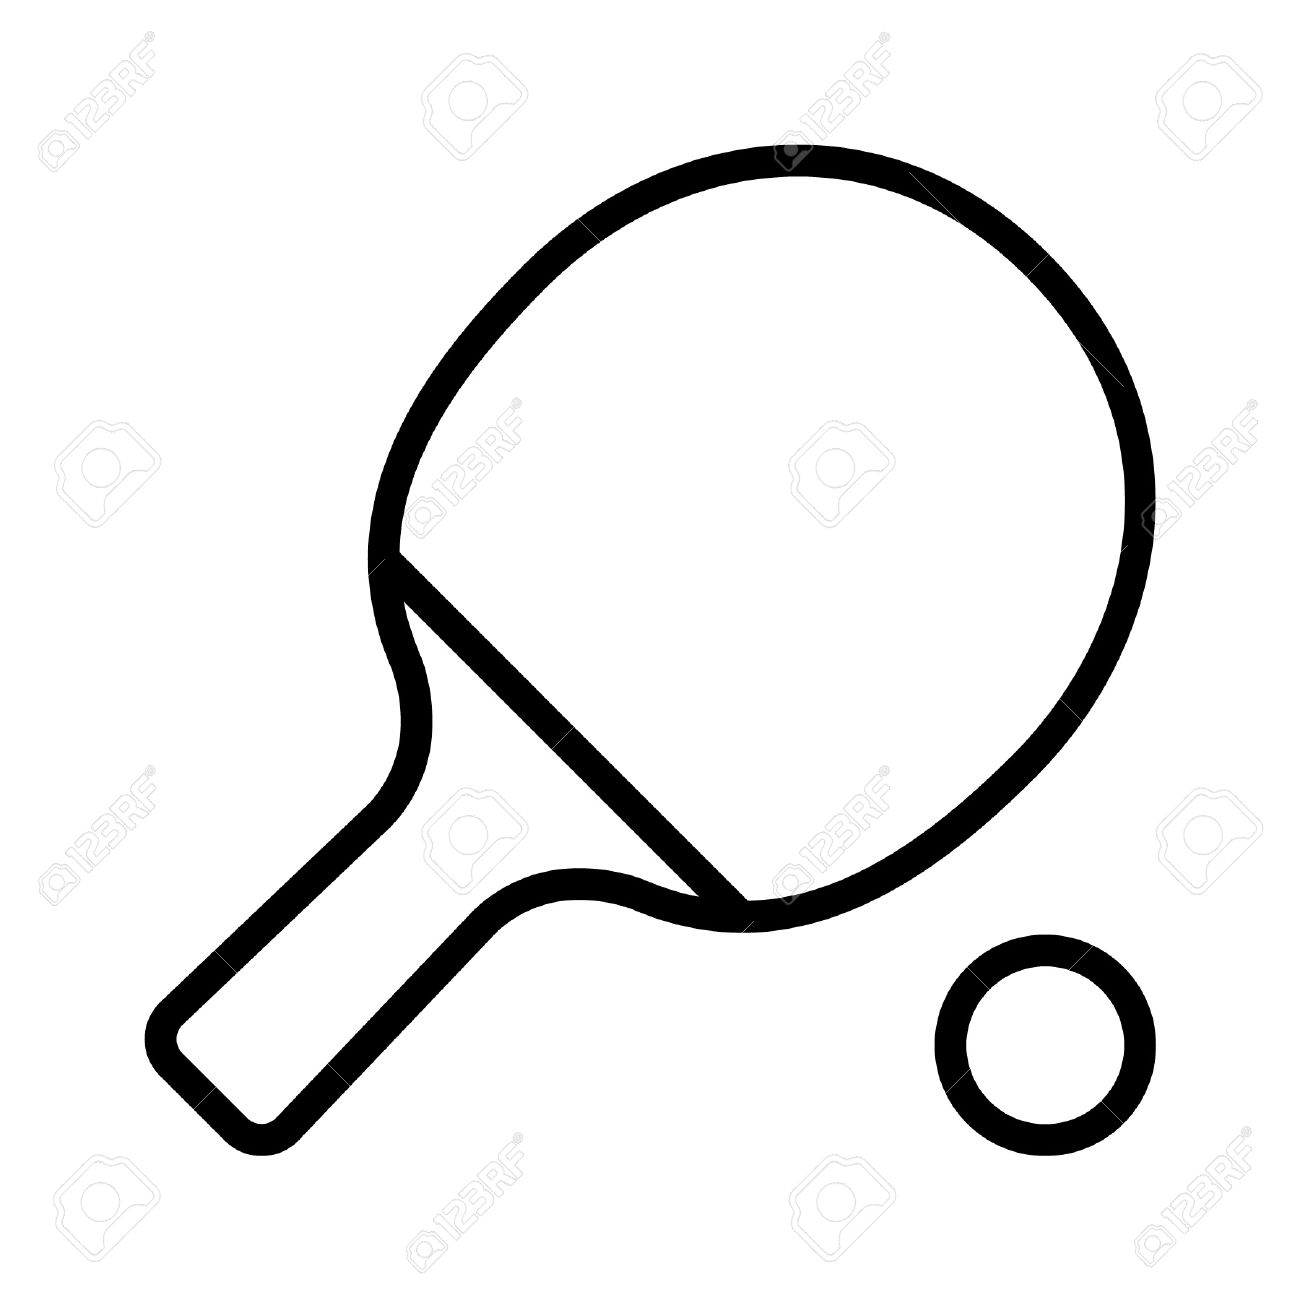 Ping Pong Paddle Clipart